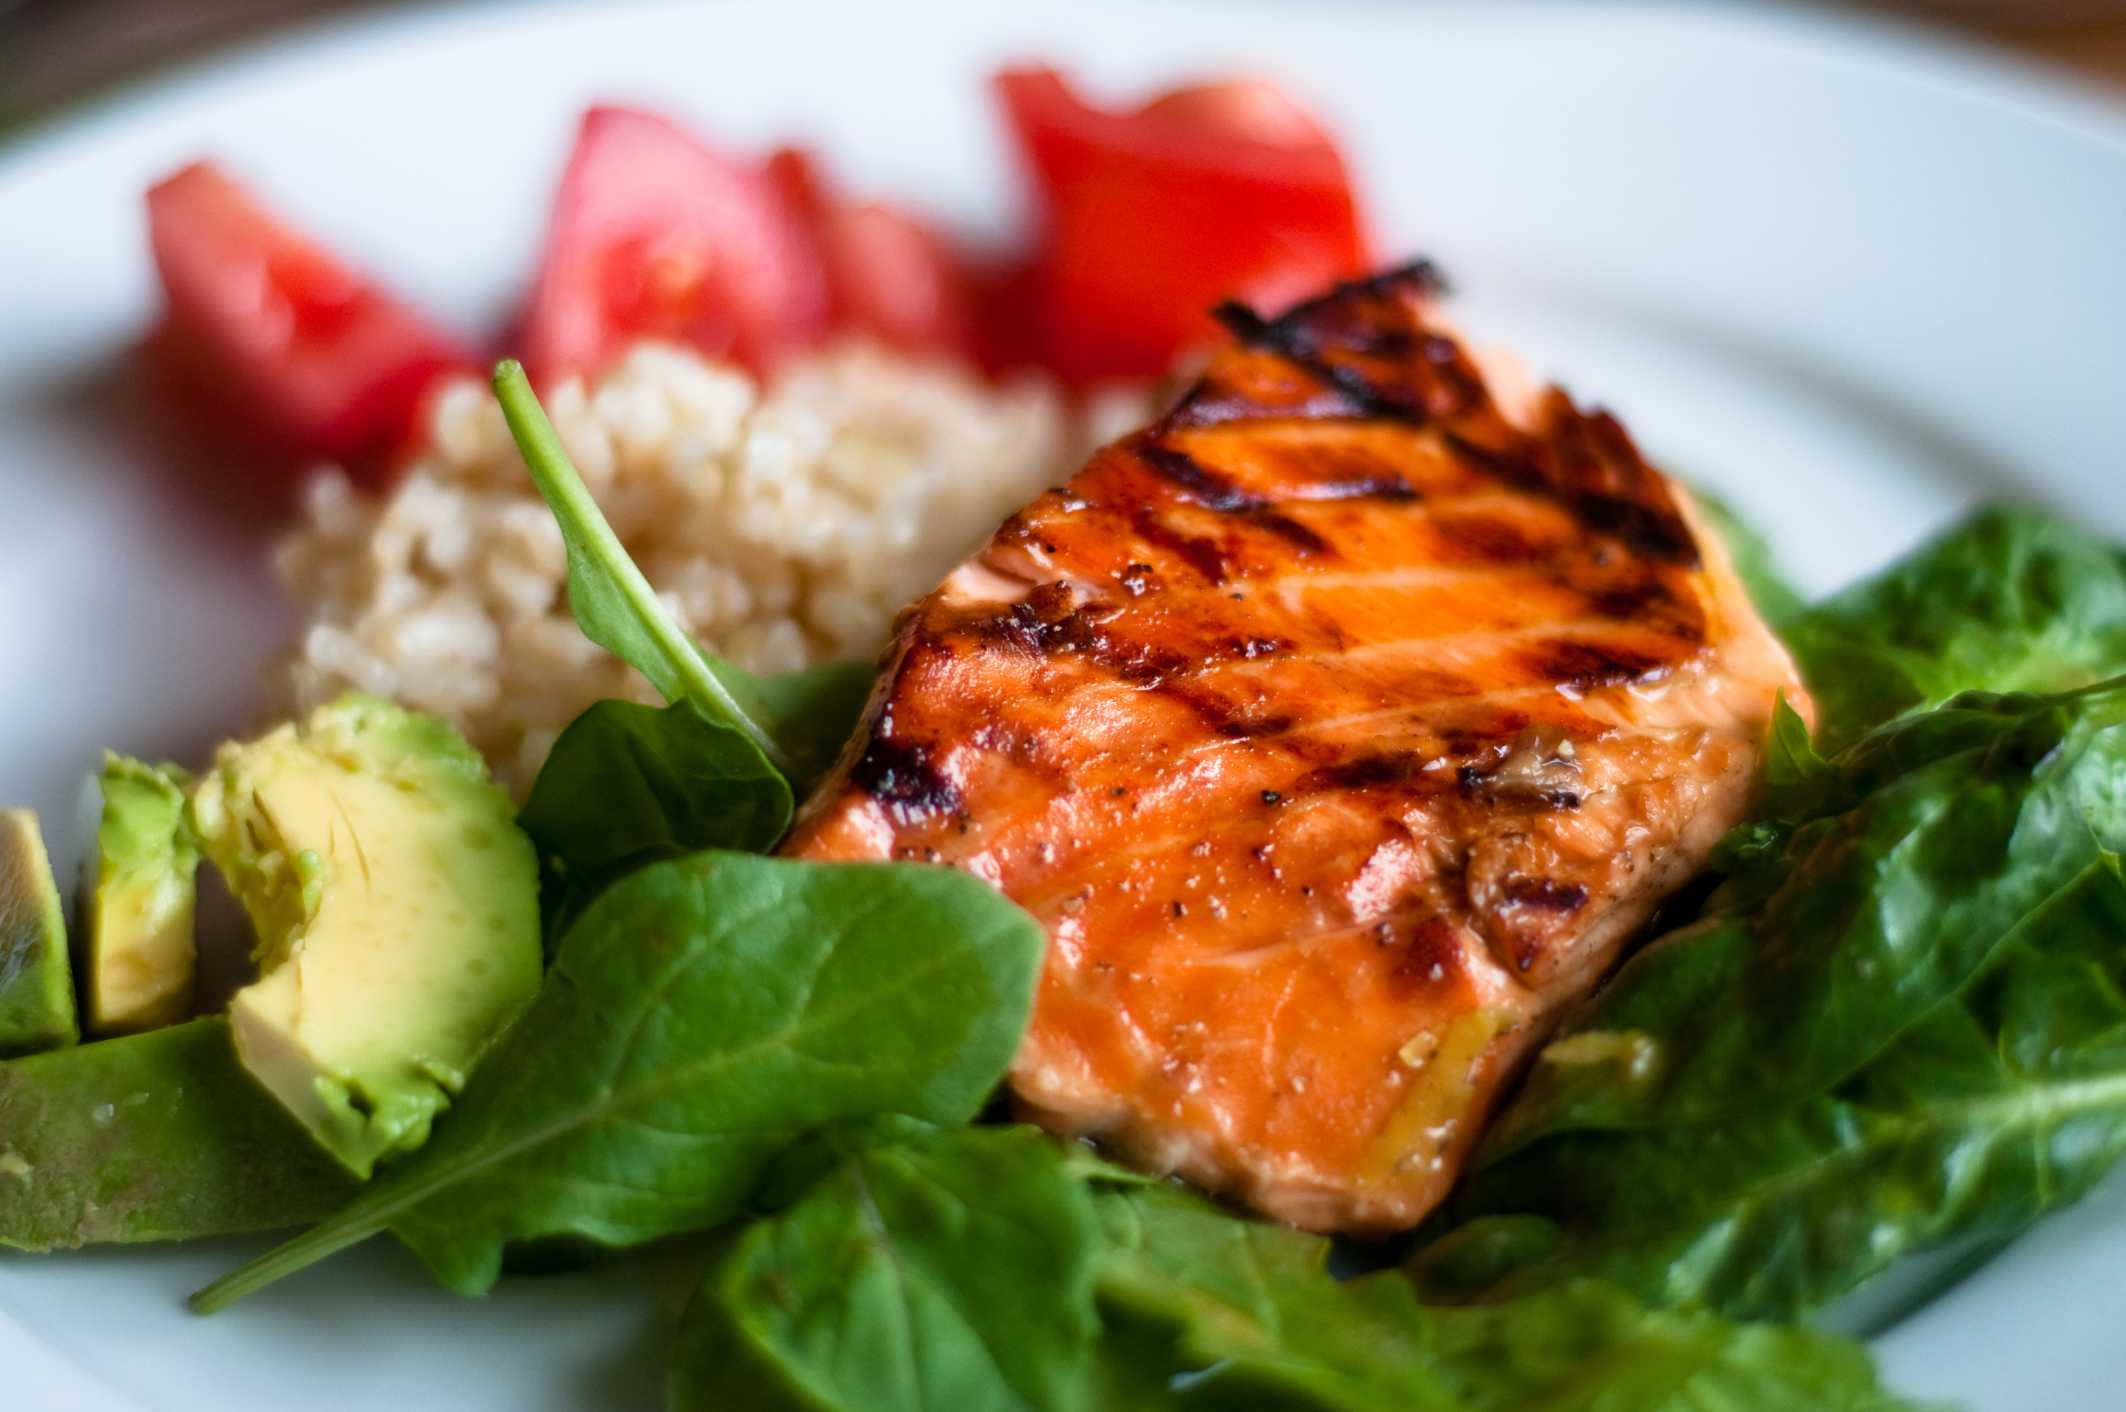 cooked salmon on a bed of spinach with sides of avocado, rice, and tomatoes